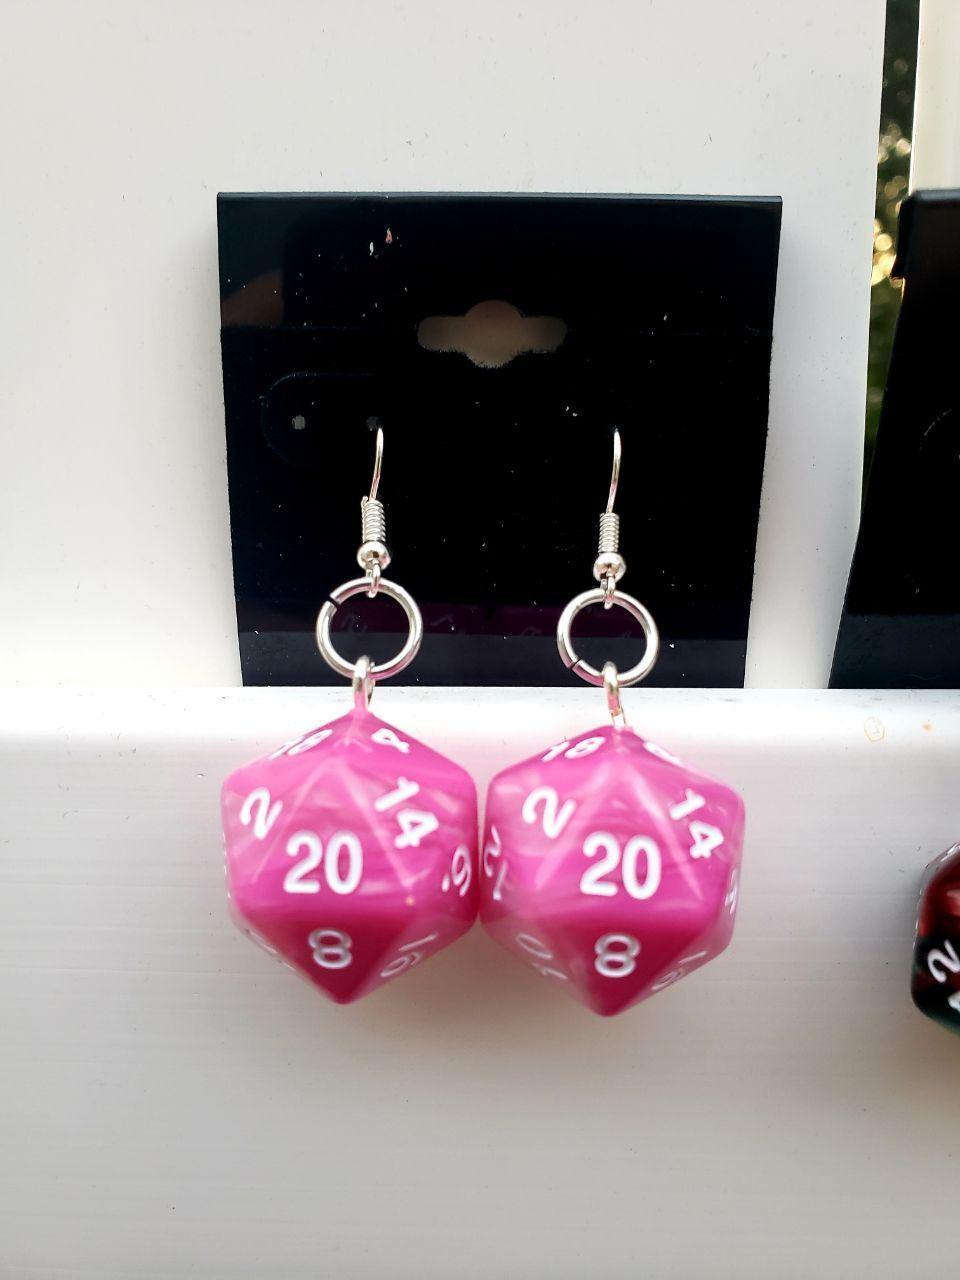 D20 Dice Earrings, Earrings, Acrylic, Earrings, Wearable - Sciggles